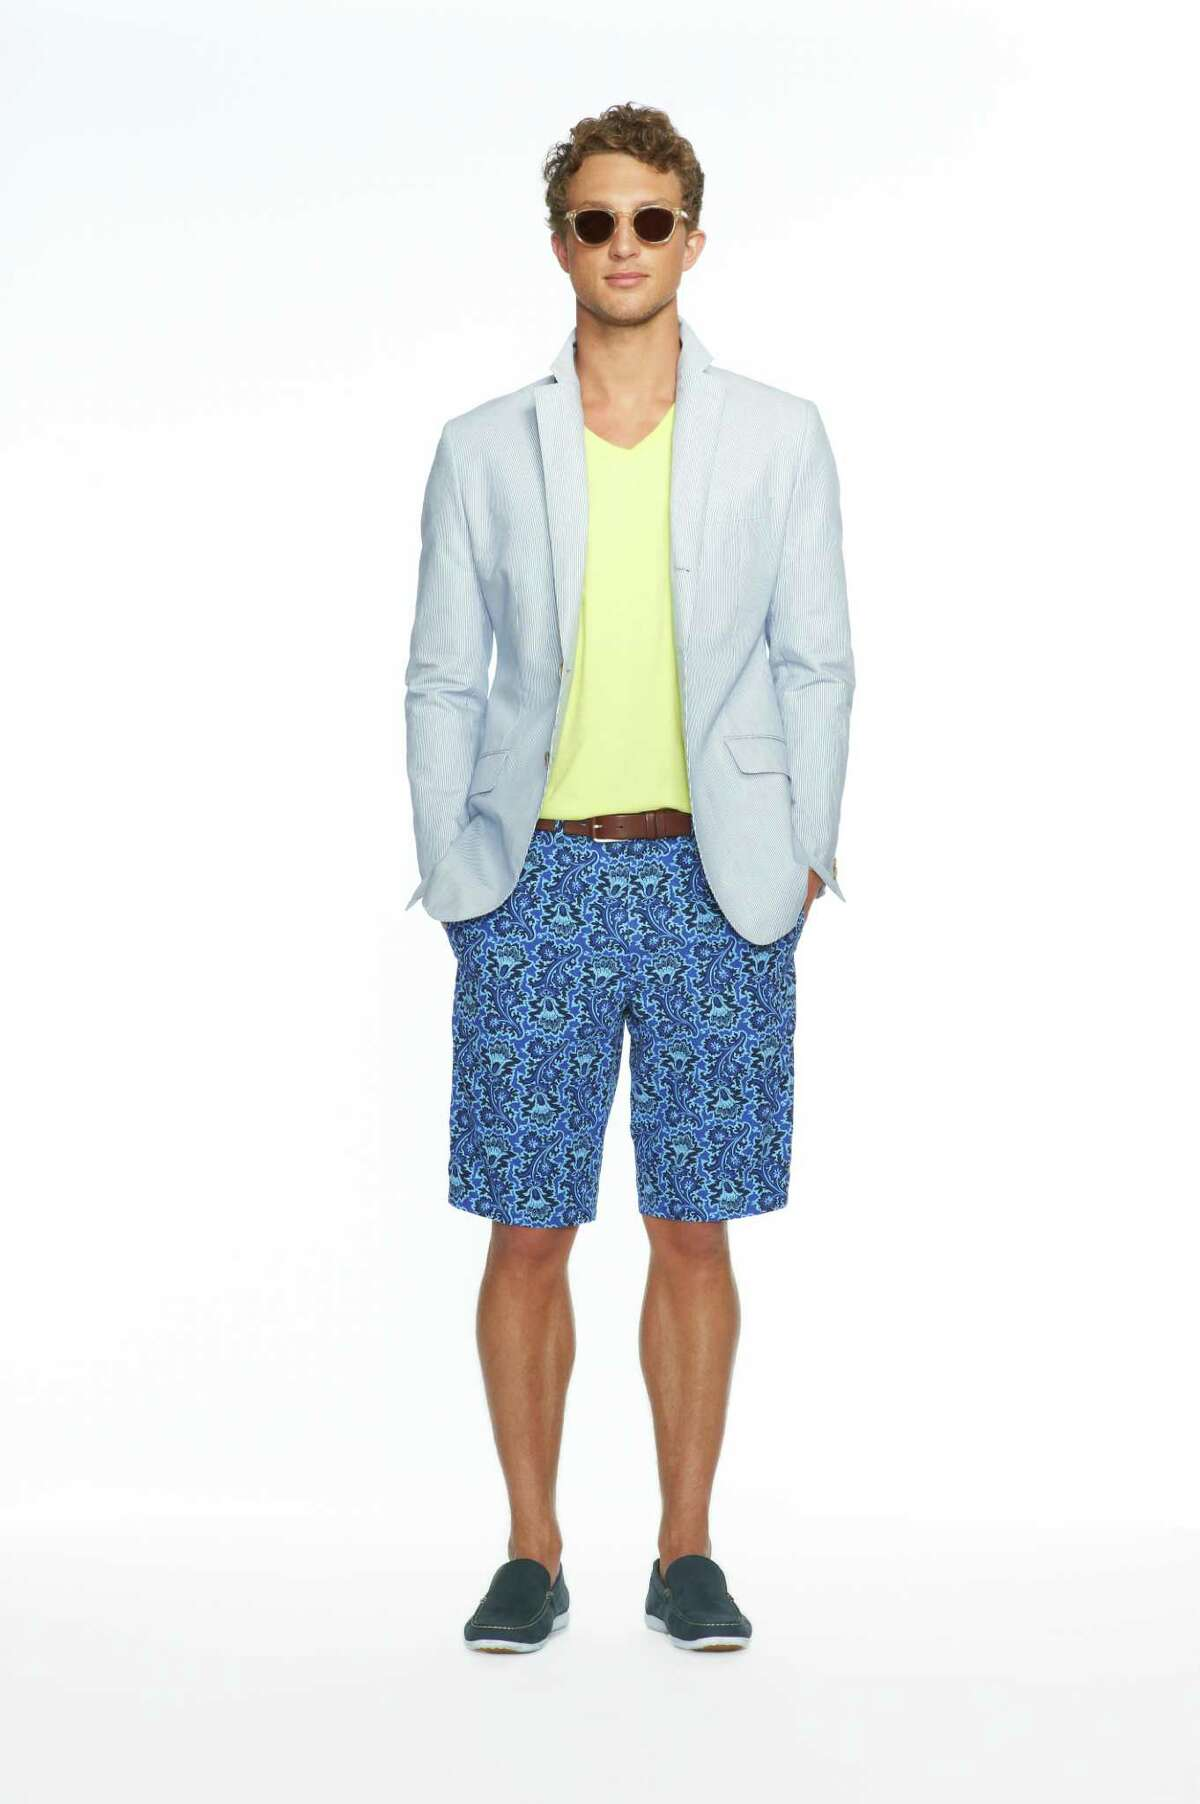 Style: Banana Republic Milly Collection Navy Corded Jacket, $250; Lime Soft-Wash Vee, $24.50; Navy Floral Printed Short, $64.50; Clear Johnny Sunglasses, $98; Navy Sailing Moccasin, $98; At Banana Republic Look 12: Chili Red Banana-Leaf Print Dress, $150.00 Turquoise Bib Necklace, $69.50 White Patent Leather Sandal, $89.00